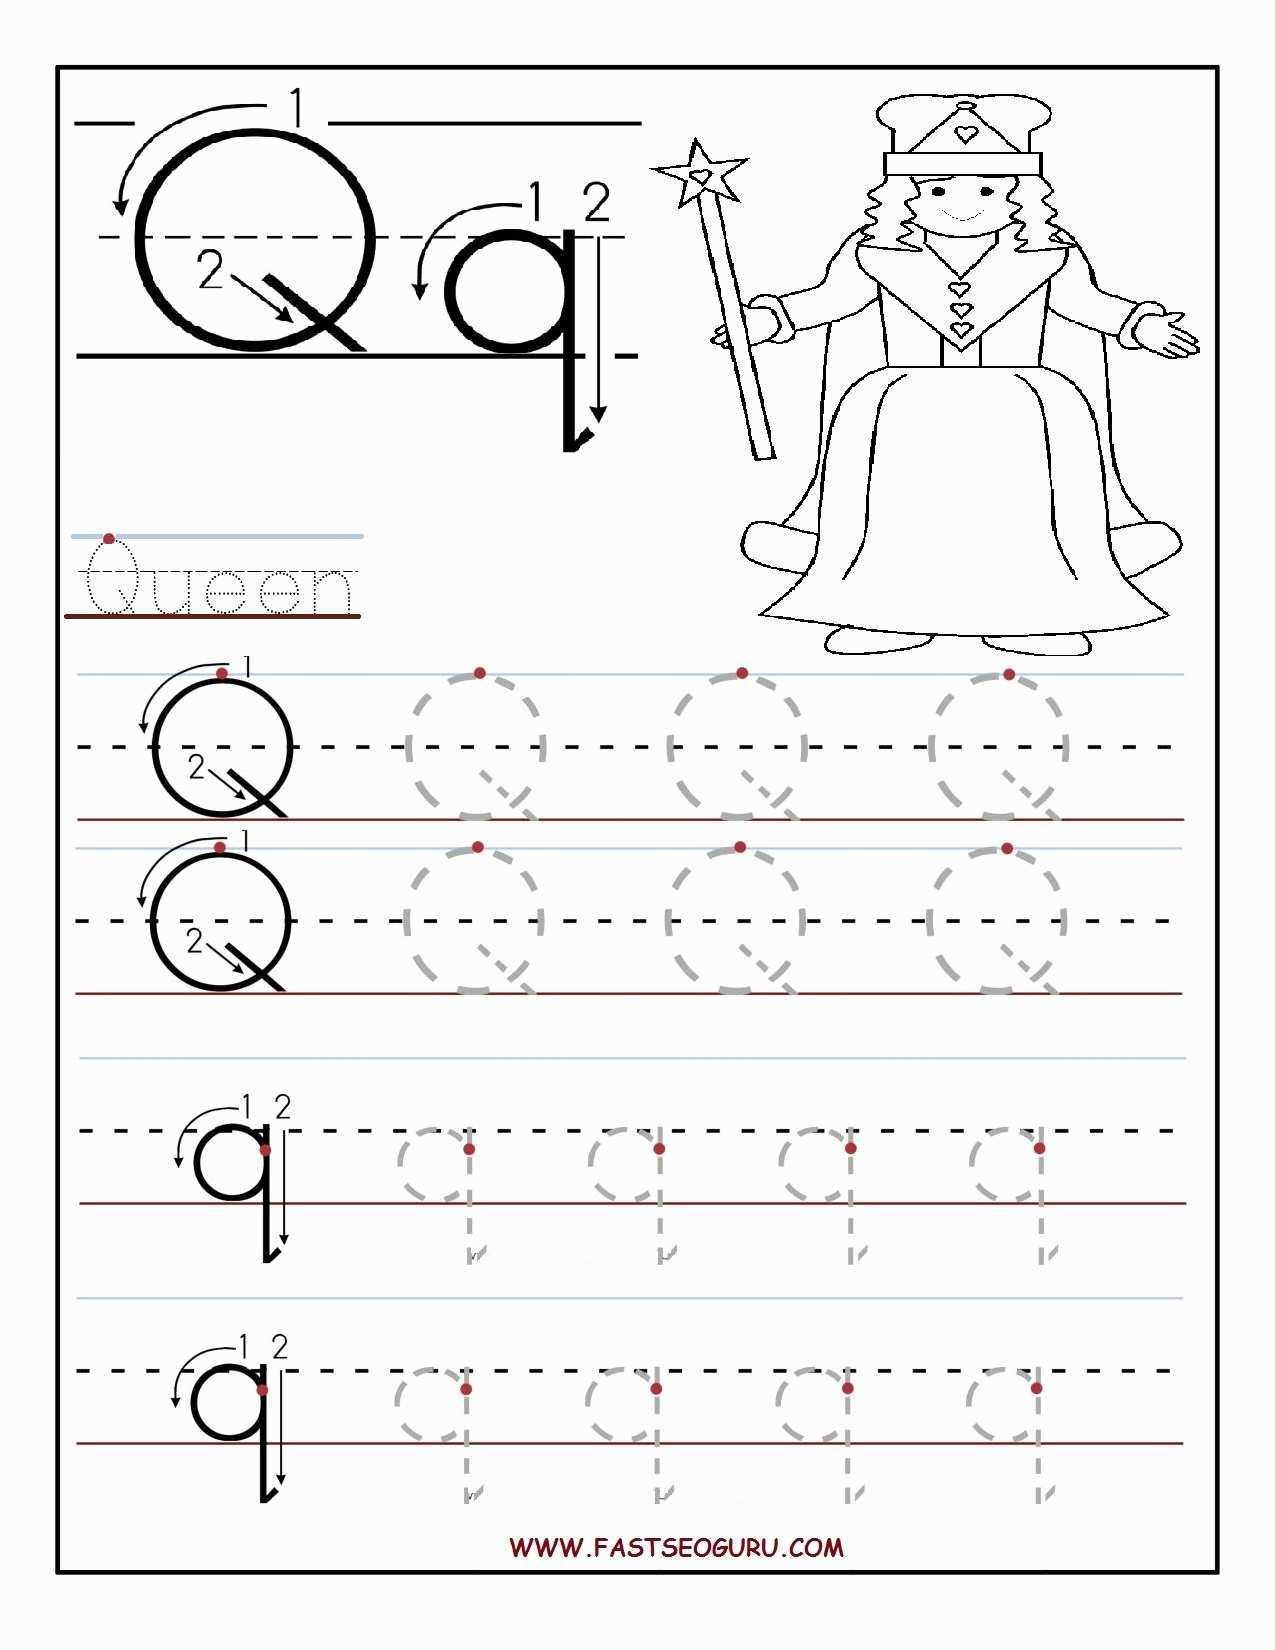 hight resolution of Alphabet Tracing Worksheets For 3 Year Olds – Letter Worksheets